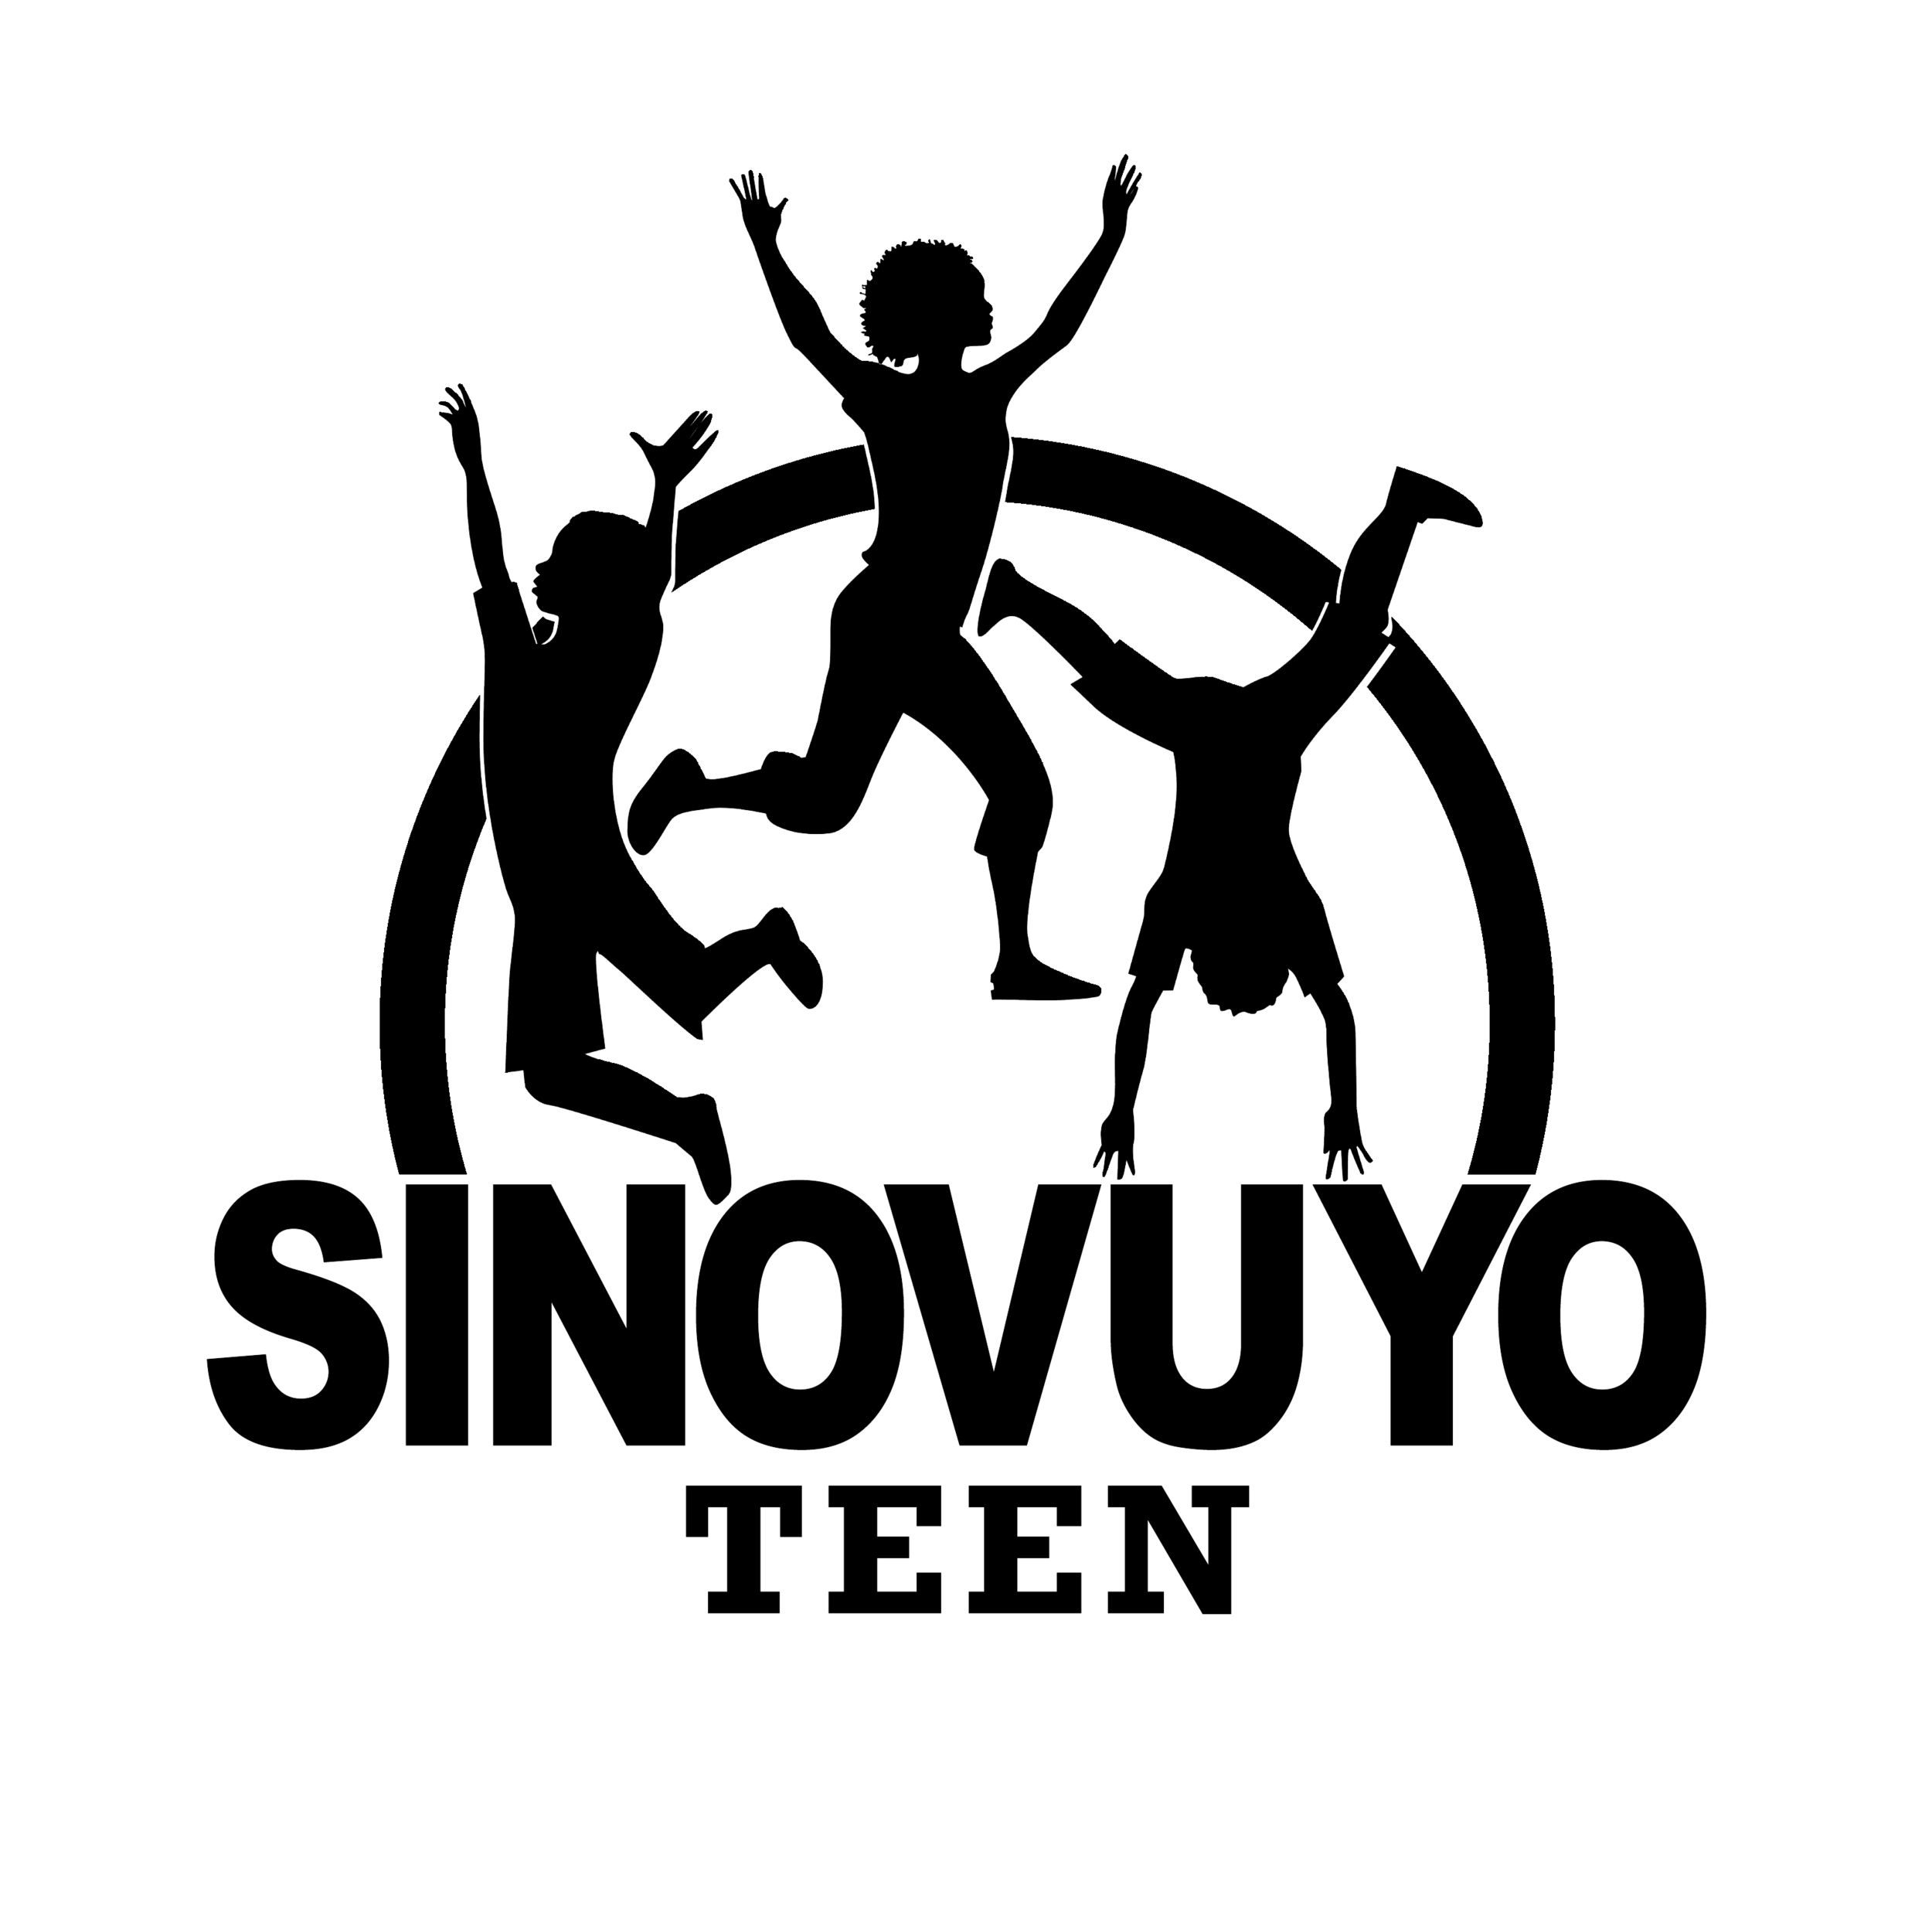 Sinovuyo Teen Study : A study to develop and evaluate a free evidence-based parenting and teen programme, with 10-17 year-olds, to reduce violence inside and outside the home in rural and peri-urban areas of South Africa.